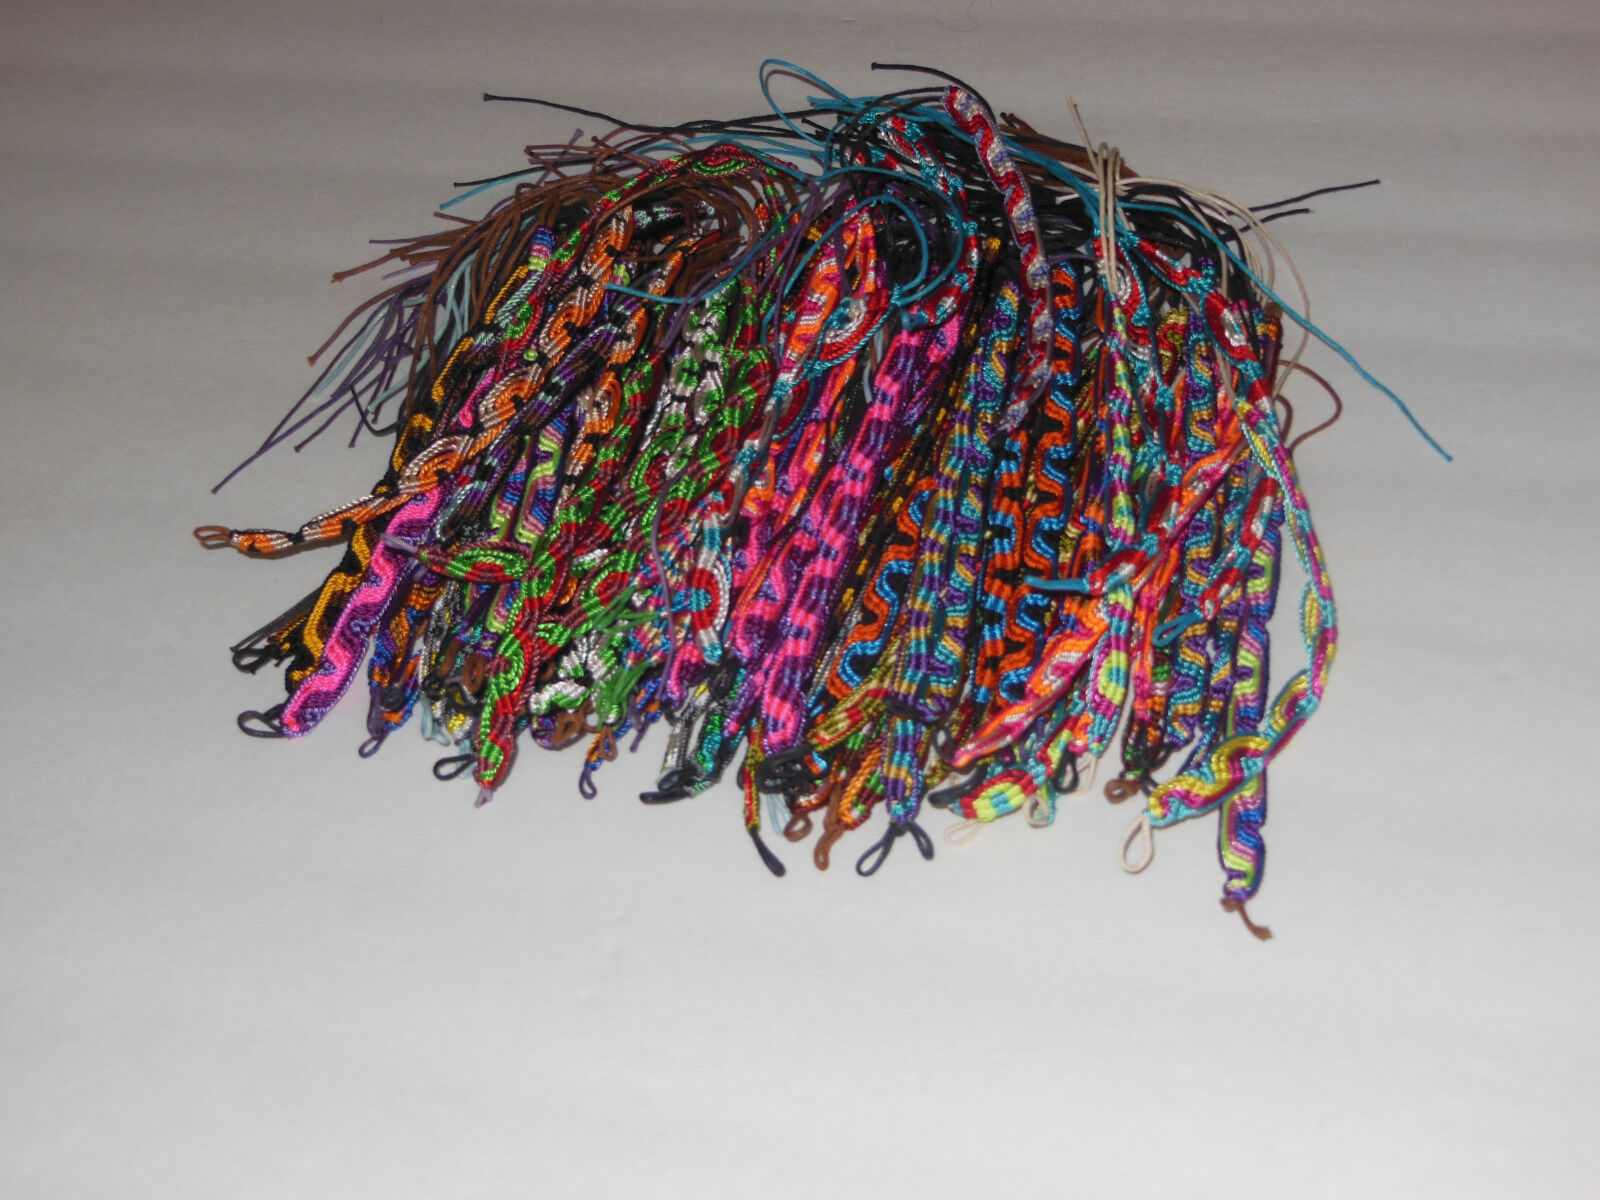 WHOLESALE LOT 100 HANDMADE FRIENDSHIP BRACELETS PERUVIAN MIX COLOR